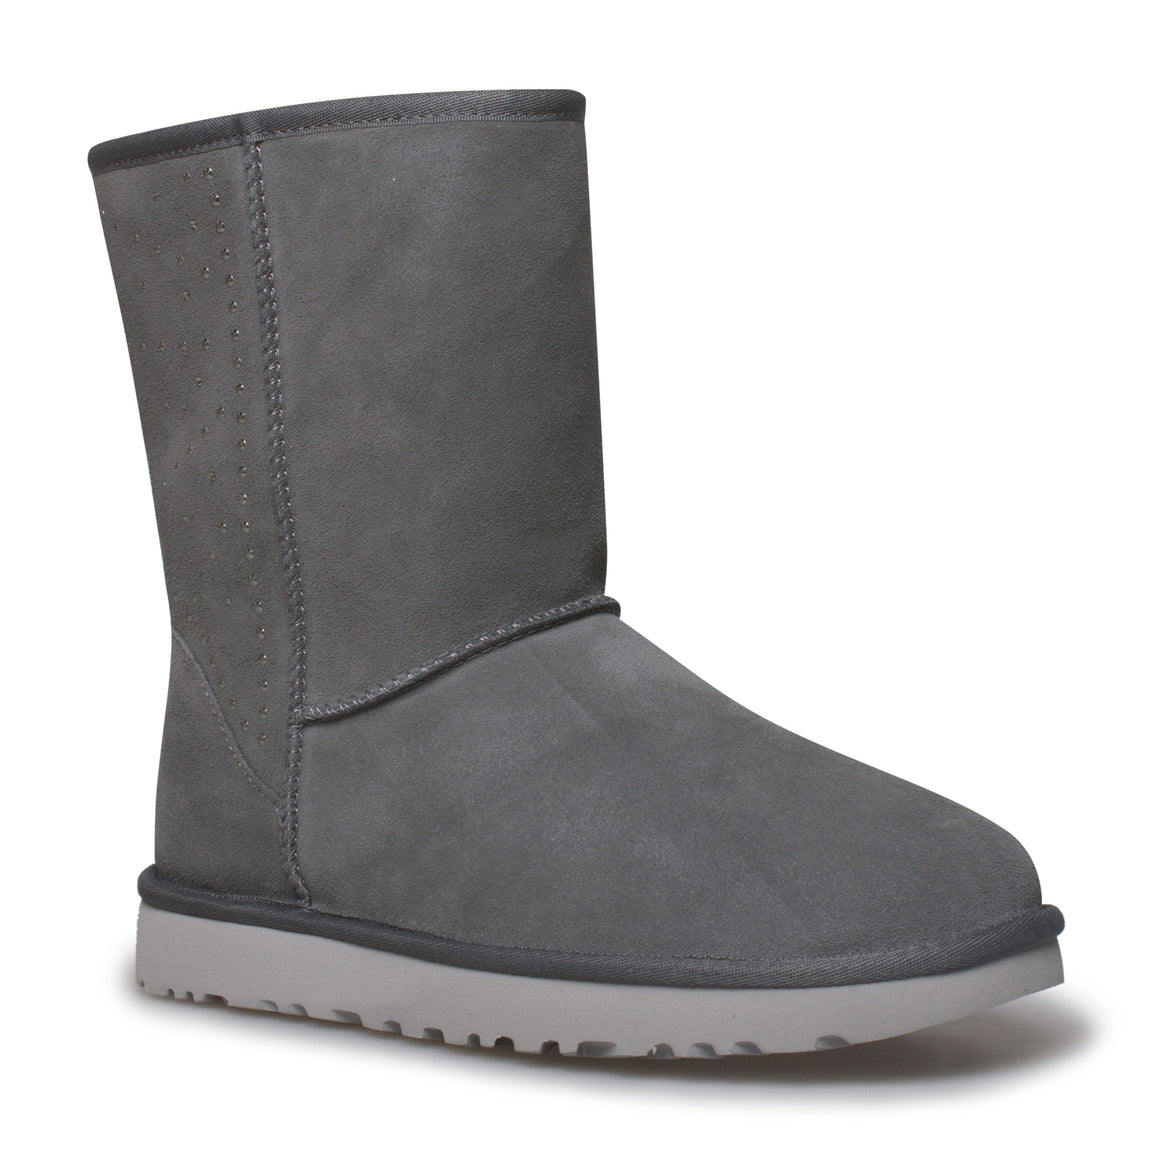 UGG Classic Short Studded Charcoal Boots - Women's